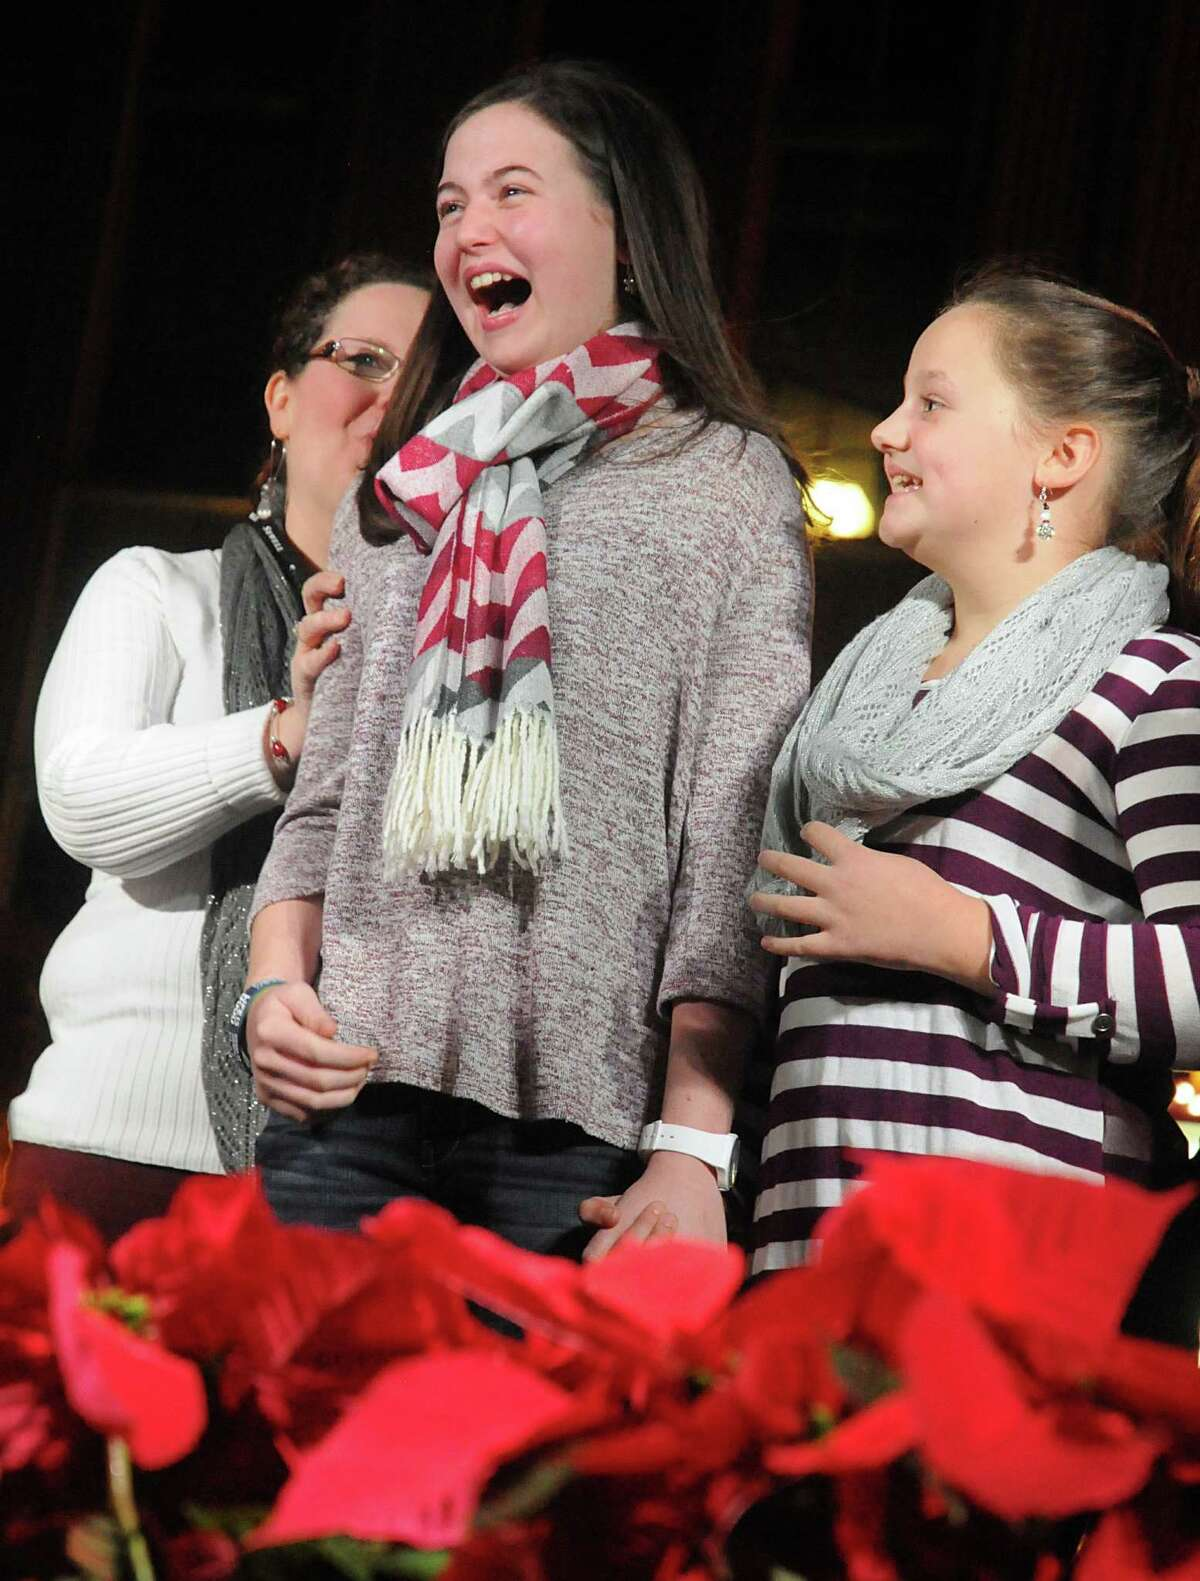 Anna King of The Woodlands, reacts after learning Tiffany and Company in Market Street was giving her a present during the Market Street Christmas tree lighting ceremony at Central Park in Market Street. King, 14, a recent heart transplant recipient was the honored guest at the ceremony.